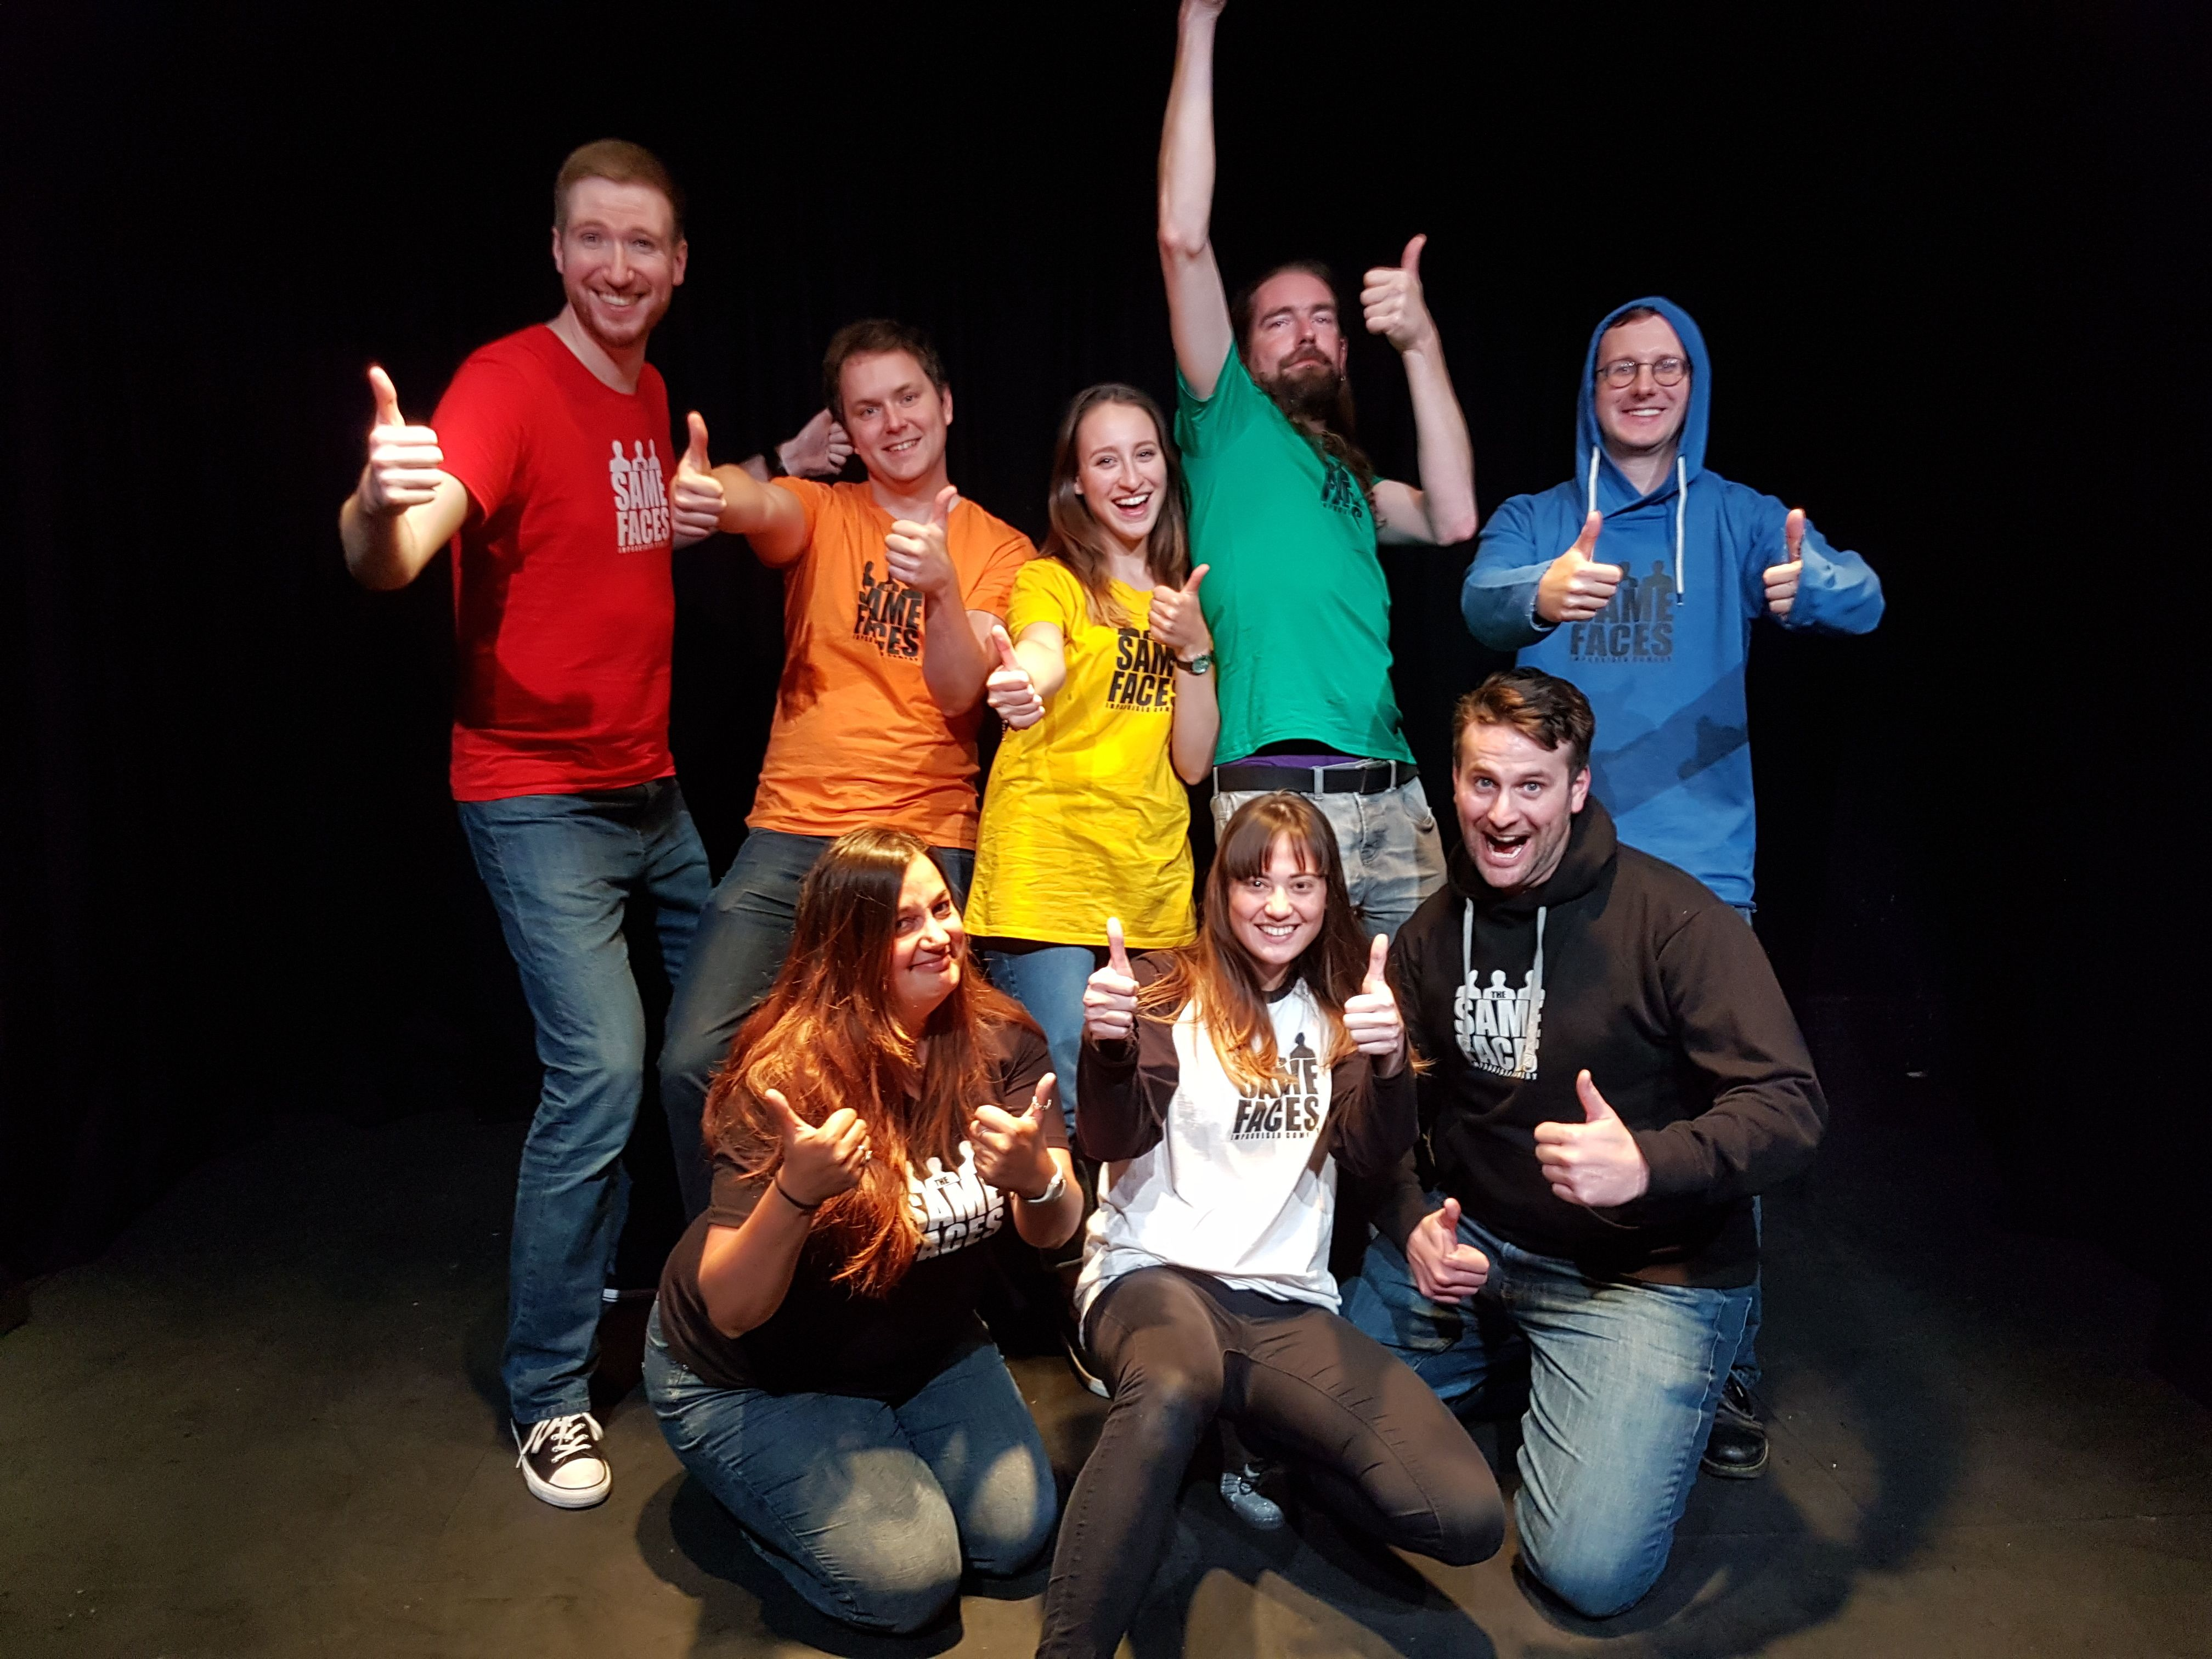 Leicester S Excellent Improvised Comedy Scene Leics Leicester United Kingdom Meetup